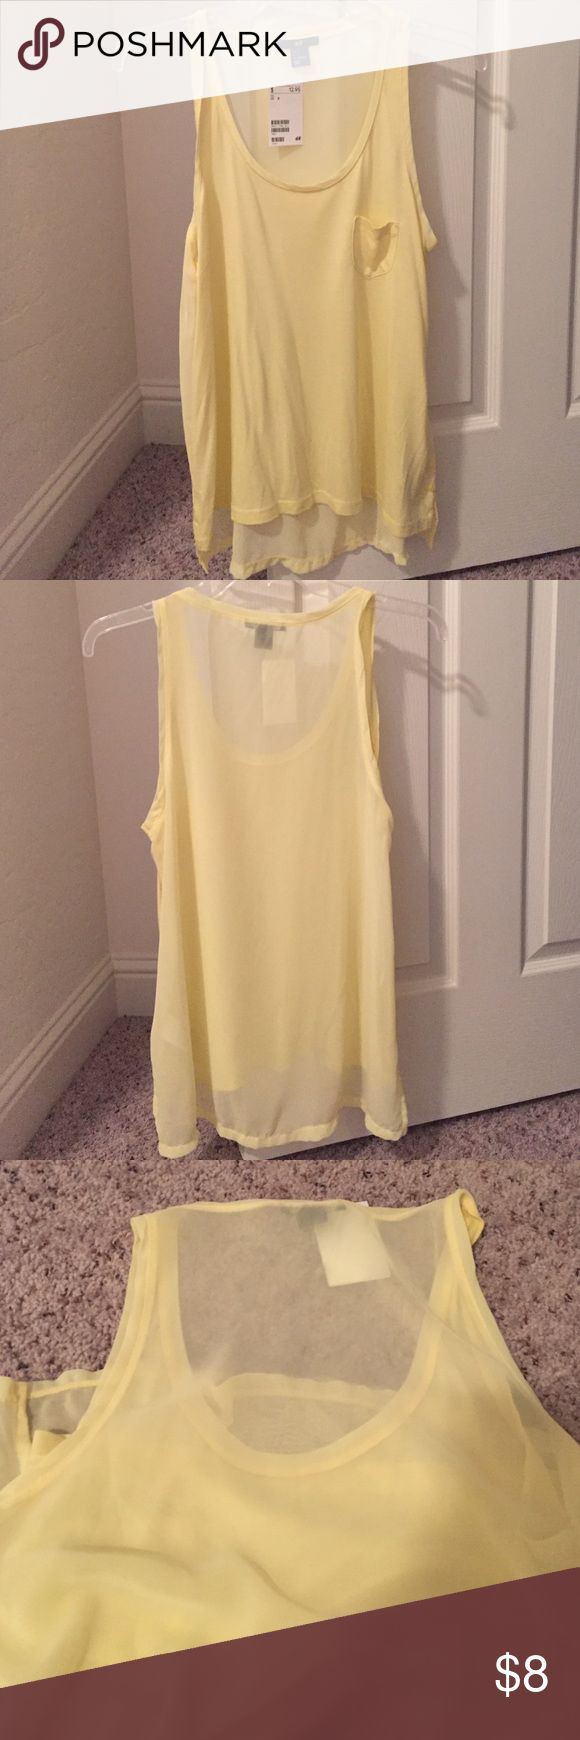 Yellow Tank Top NWT Yellow H&M Tank Top. Small picket in front. Back is sheer and slightly longer than front. Two small slits on each side. H&M Tops Tank Tops